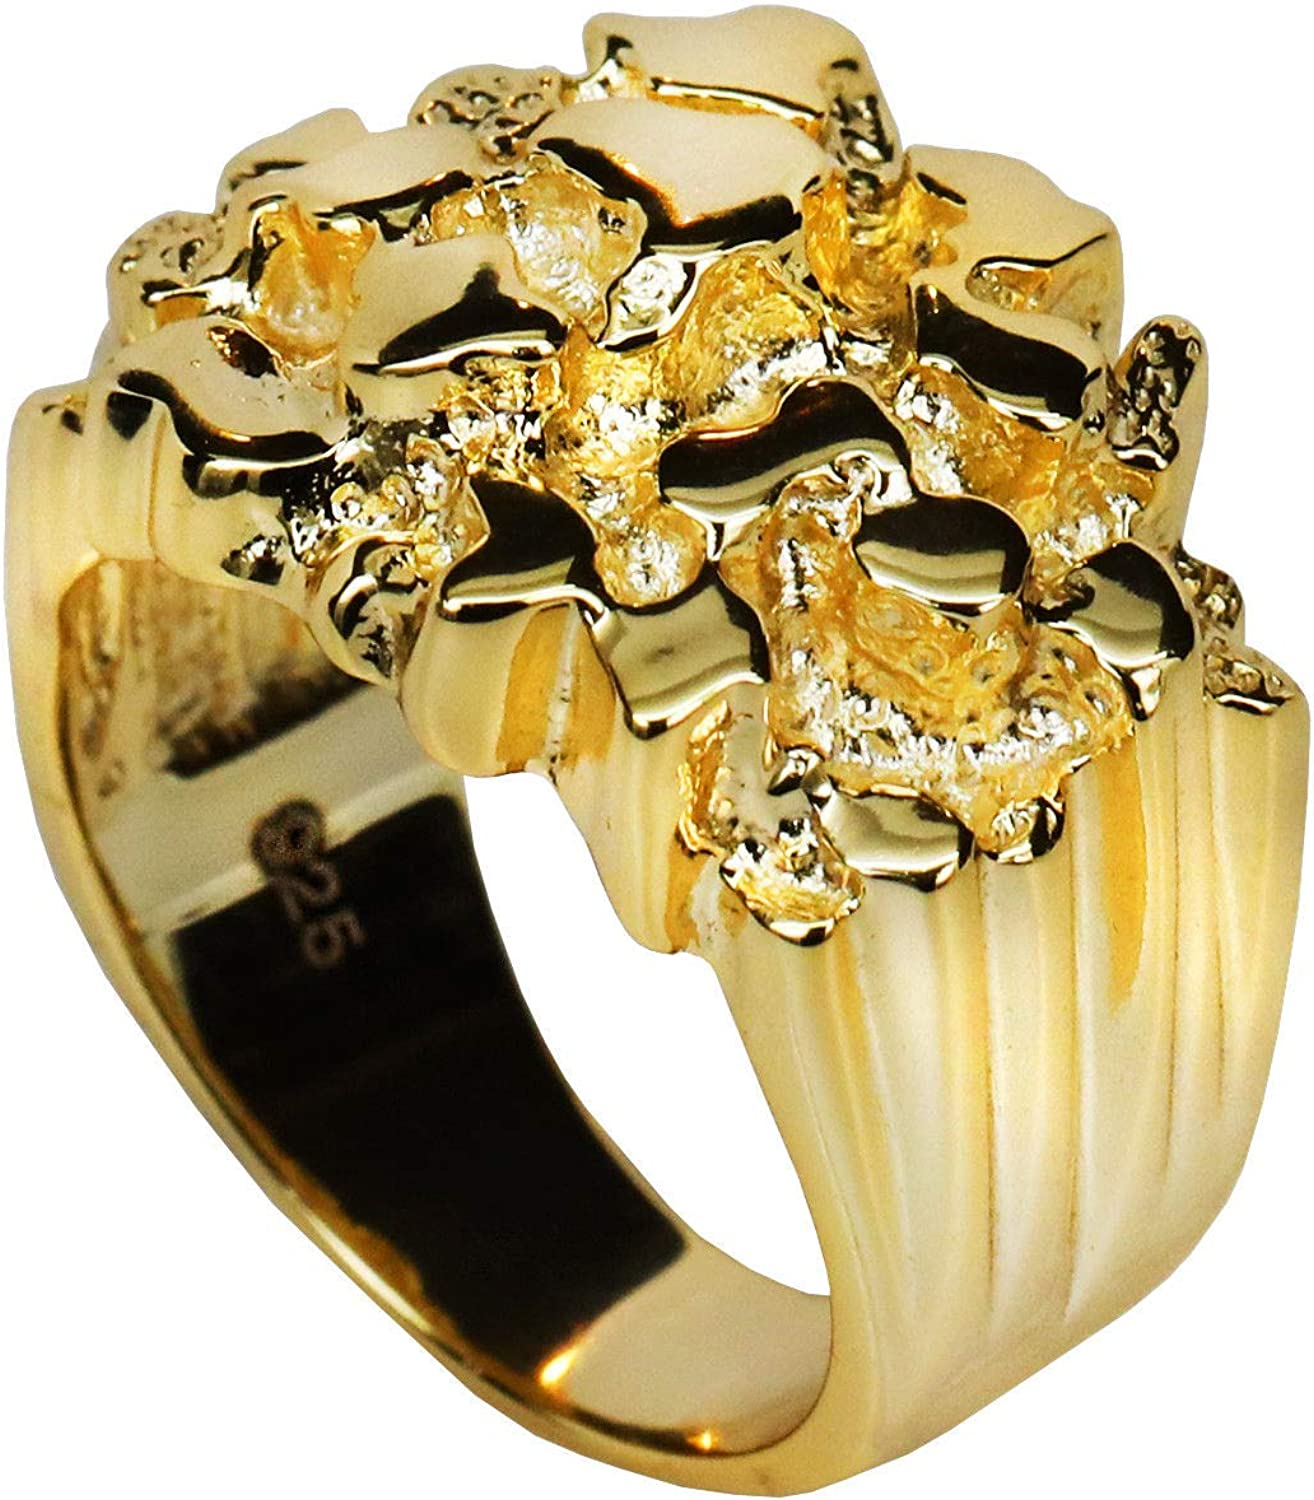 Harlembling Solid 925 Sterling Silver Men's Silver Ring - Gold Nugget Ring - Pinky or Ring Finger - Sizes 7-13